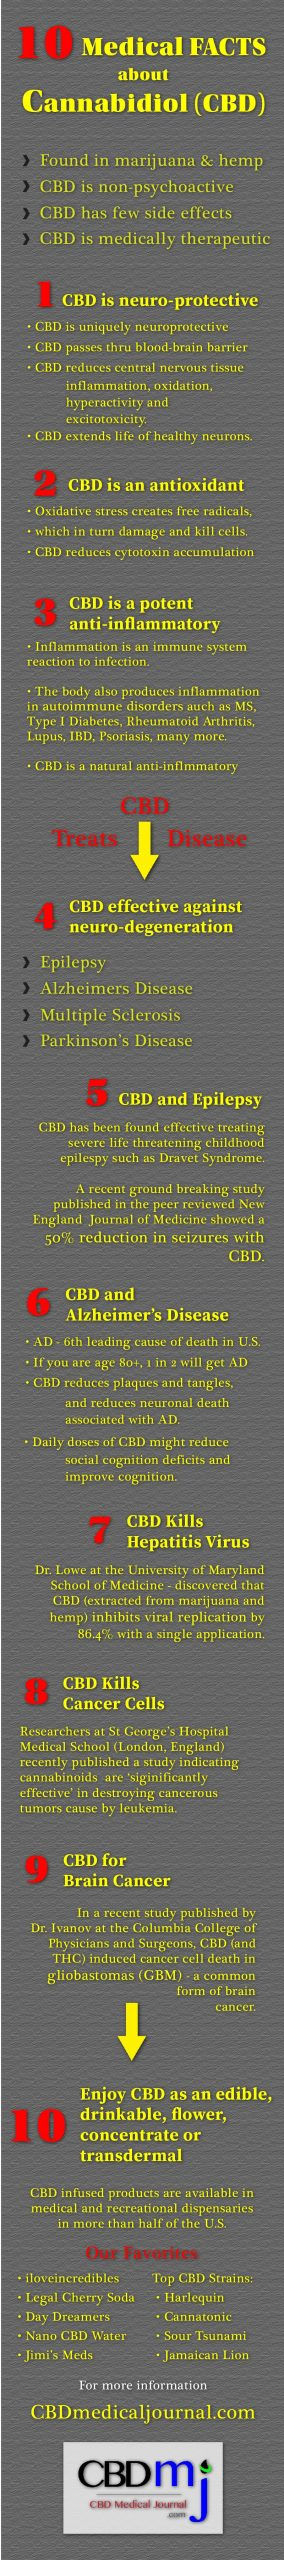 10 CBD Medical Marijuana Facts Infographic, CBD Medical Journal